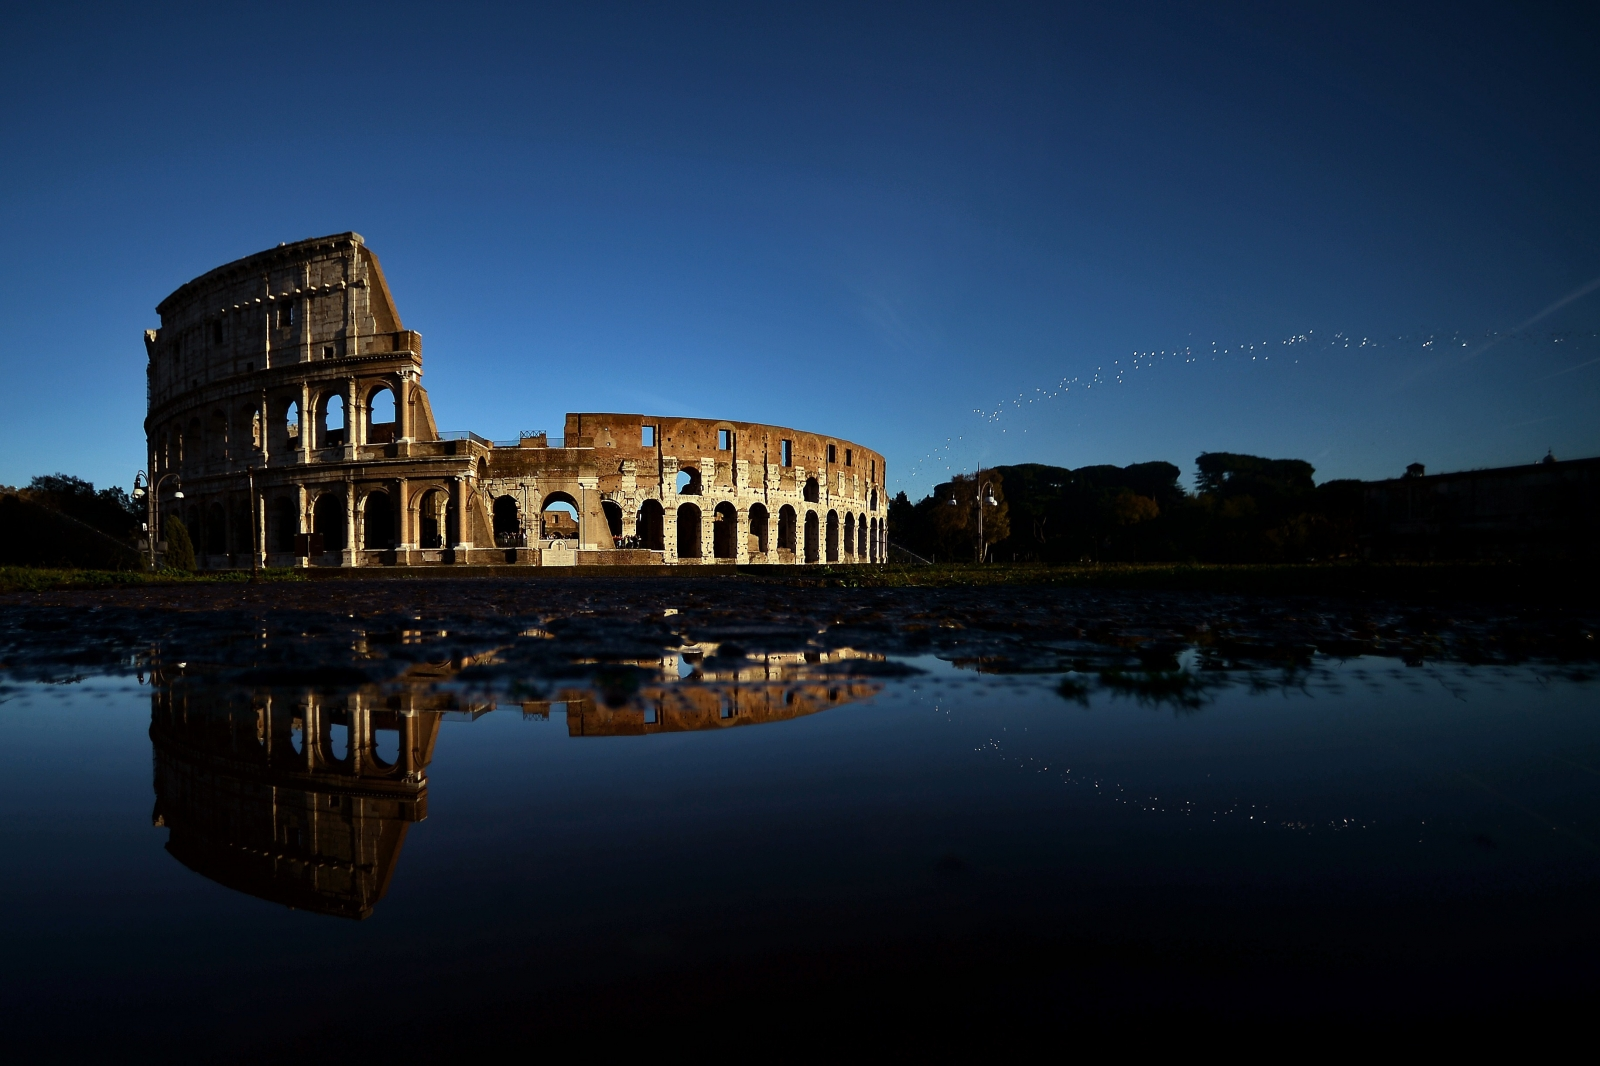 The Colosseum is the largest amphitheater in the world and is considered to be Rome´s most popular tourist attraction